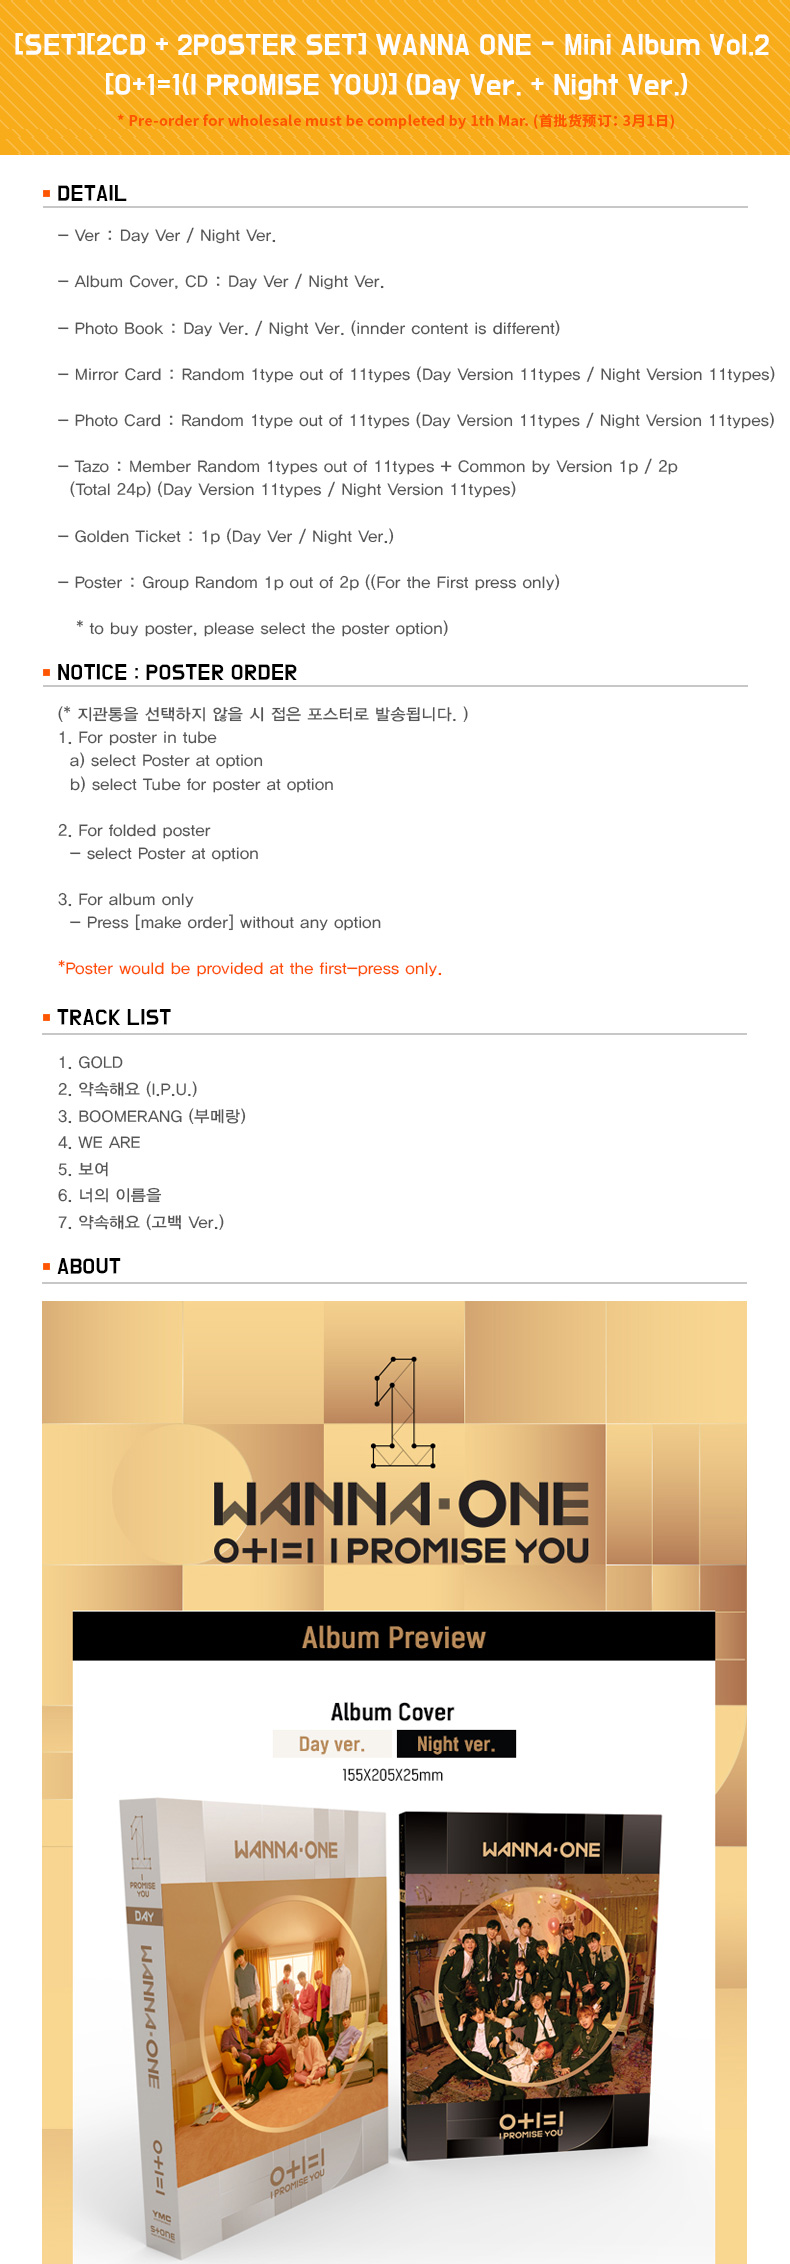 [SET][2CD + 2POSTER SET] WANNA ONE - Mini Album Vol.2 [0+1=1(I PROMISE YOU)] (Day Ver. + Night Ver.)